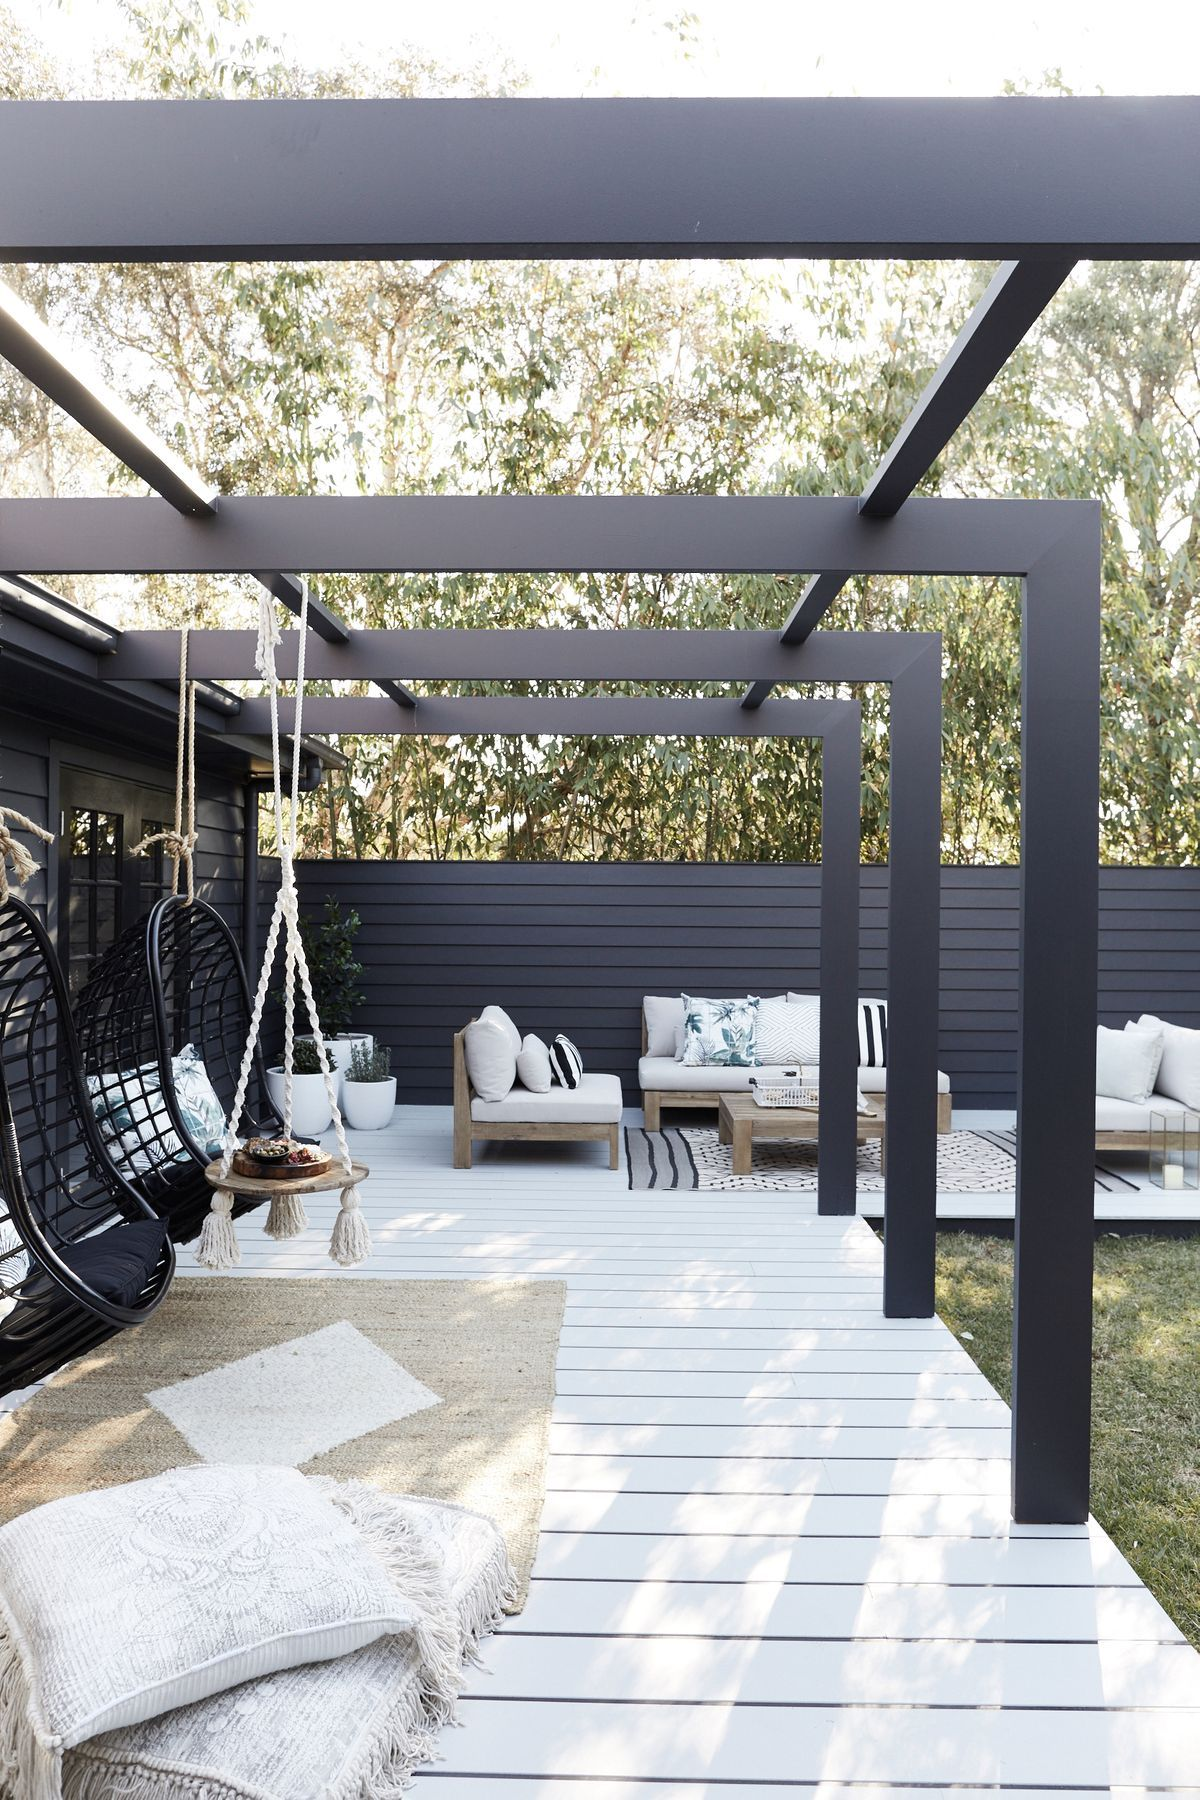 This Three Birds Alfresco Area Is an Entertainer's Dream